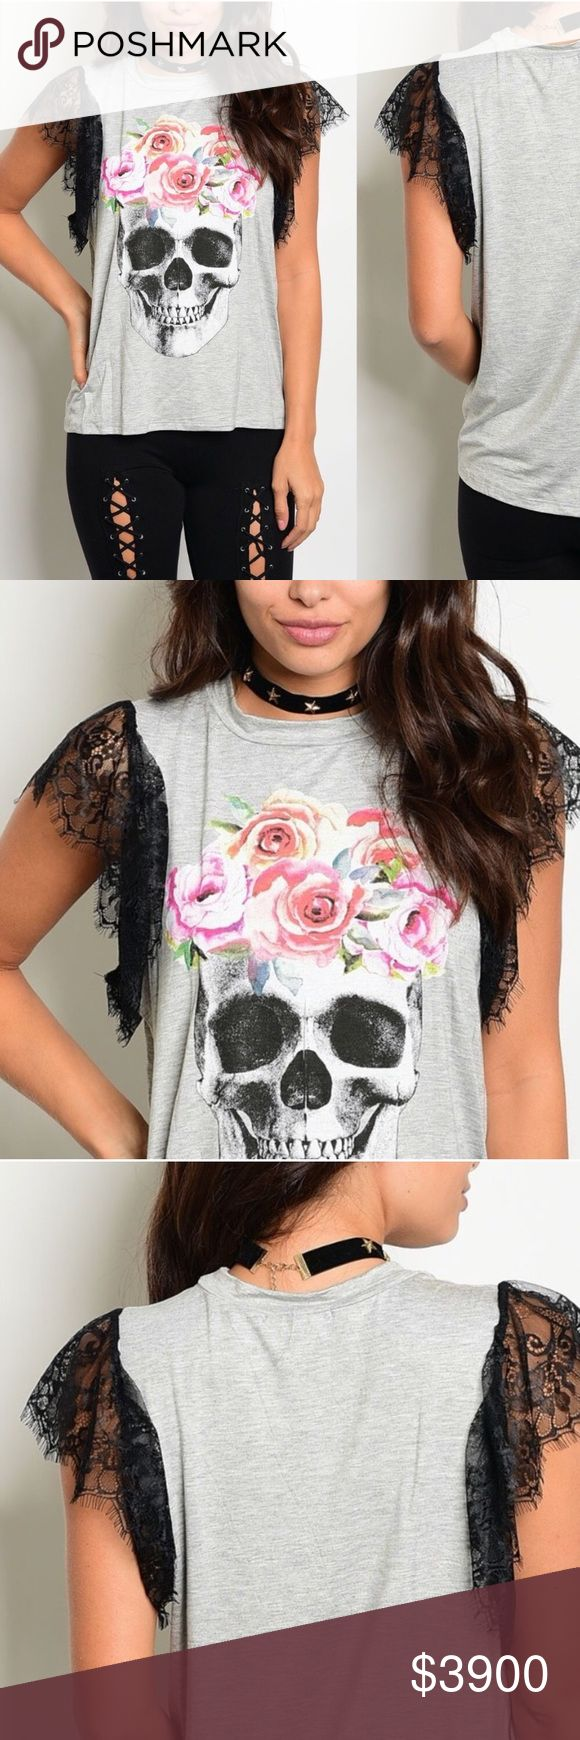 Black lace skull and roses top Black lace skulls and roses in heather grey. 96% cotton, 4% spandex. GlamVault Tops Tees - Short Sleeve